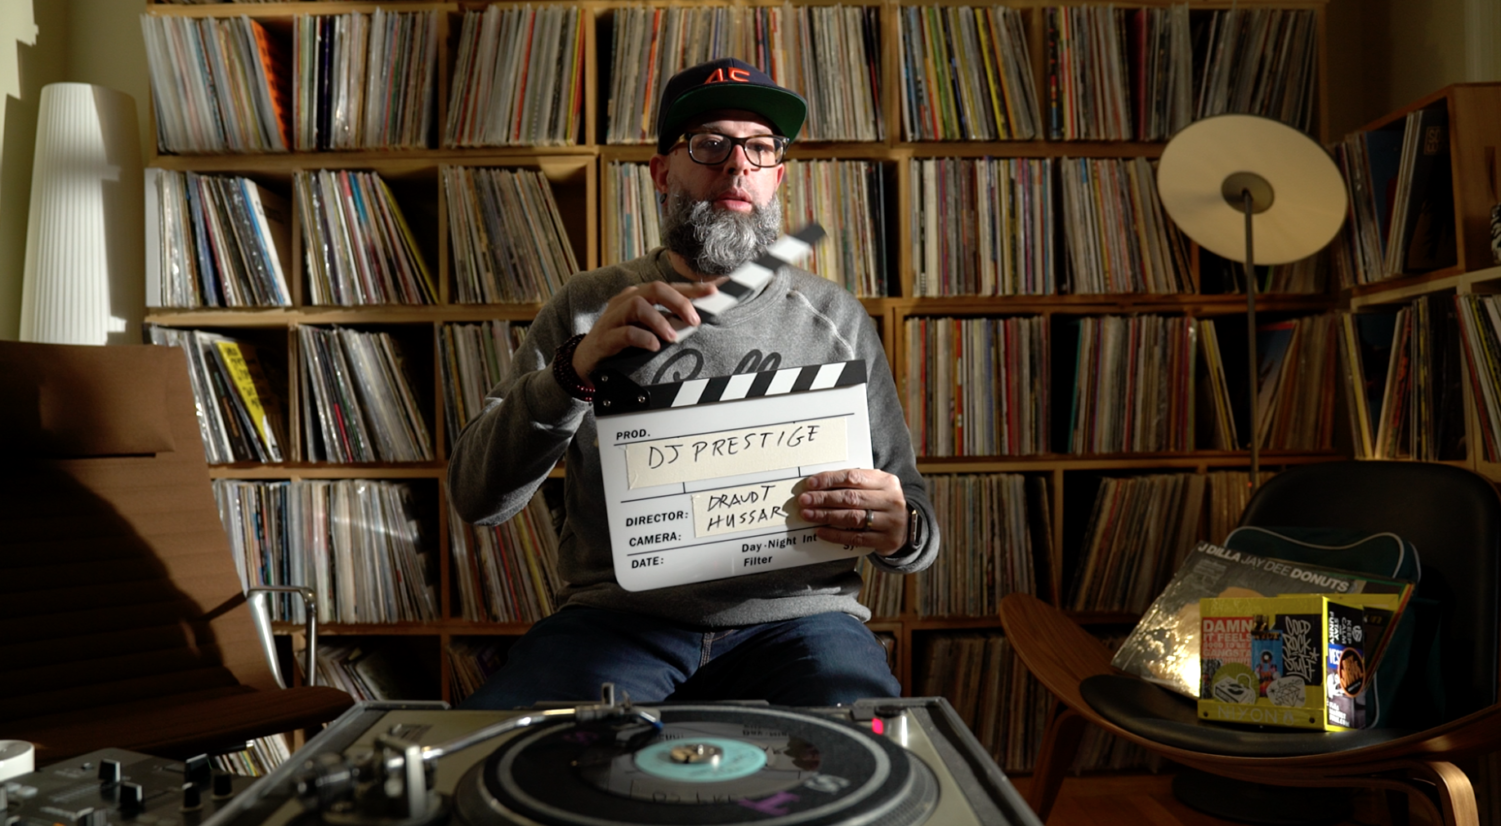 Watch 'The Hustle Is Real', a Short Documentary with DJ Prestige of Flea Market Funk (+ Q&A)